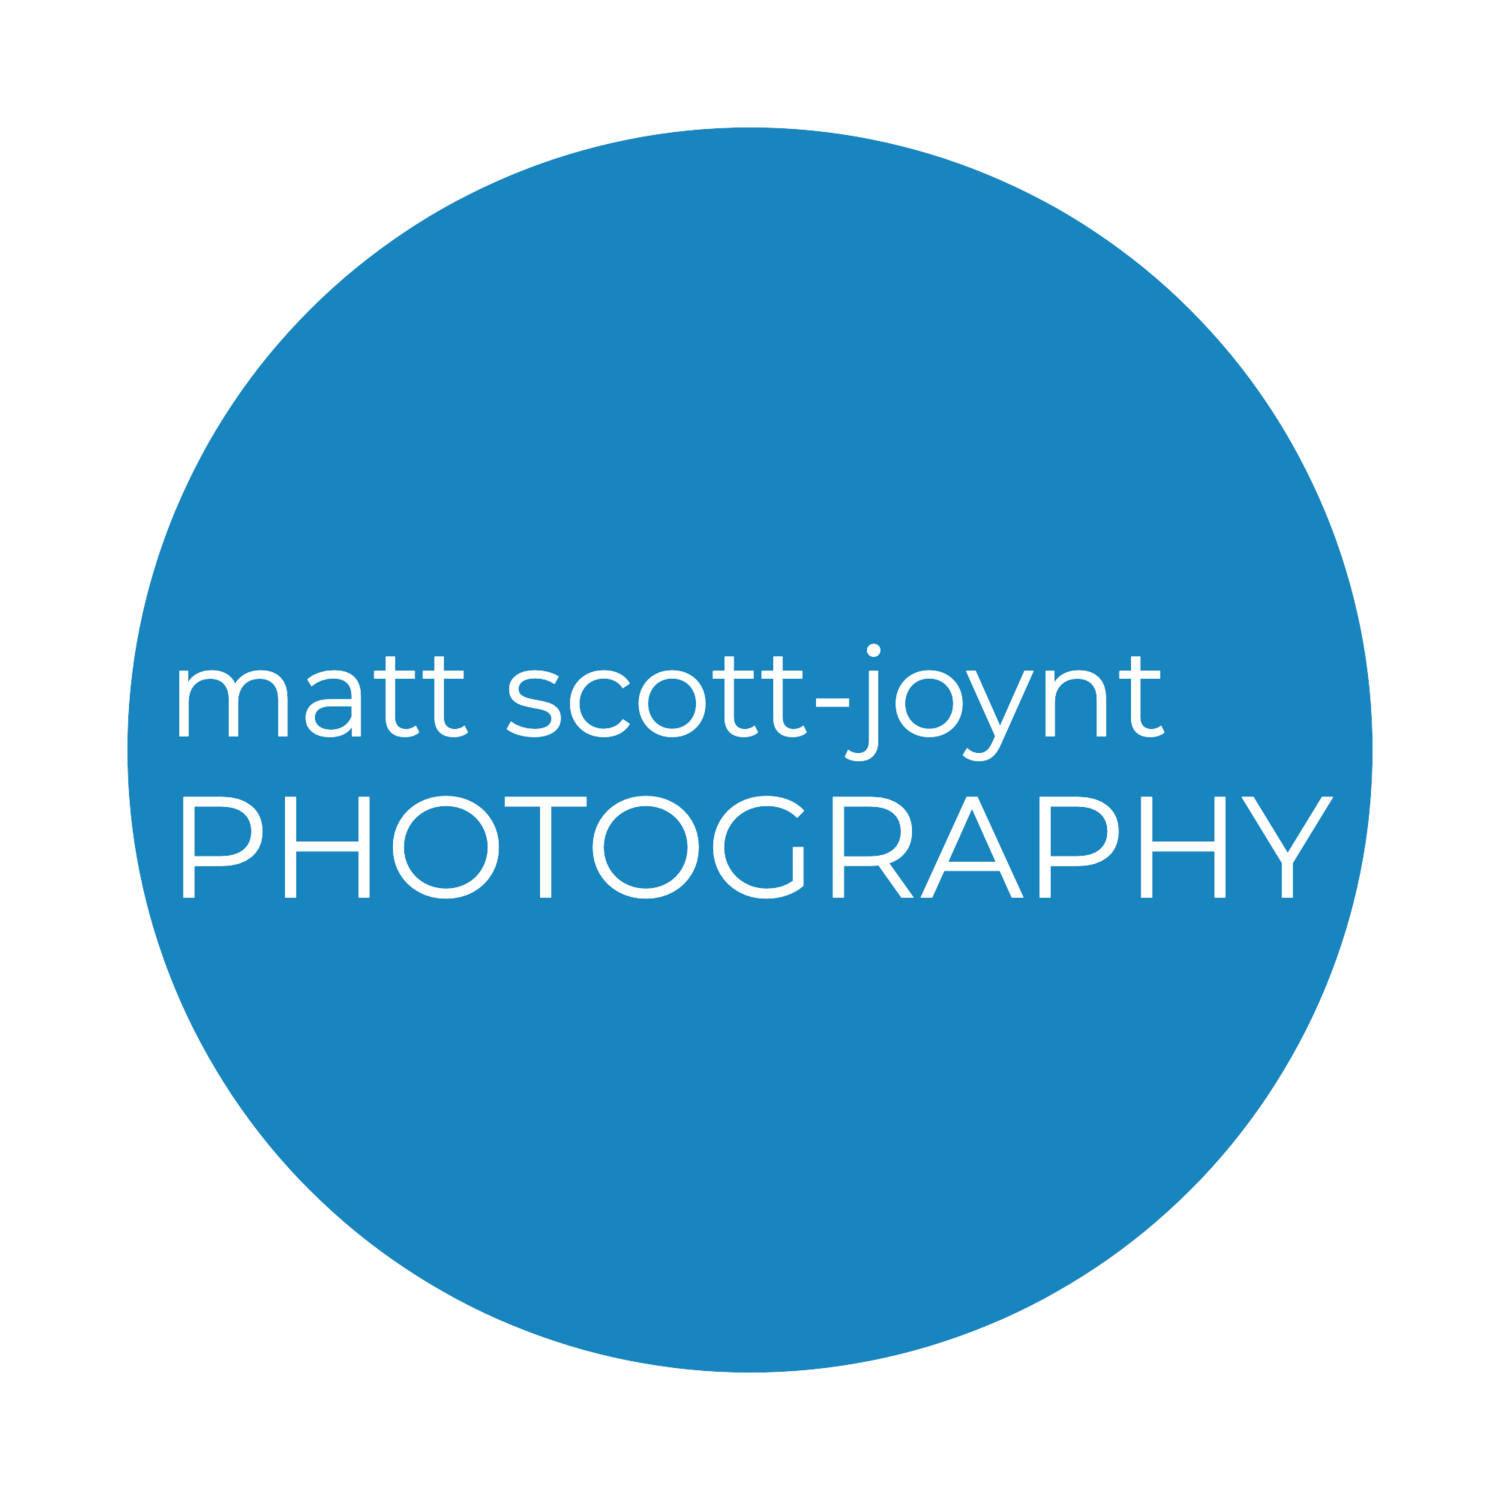 MATT SCOTT-JOYNT PHOTOGRAPHY